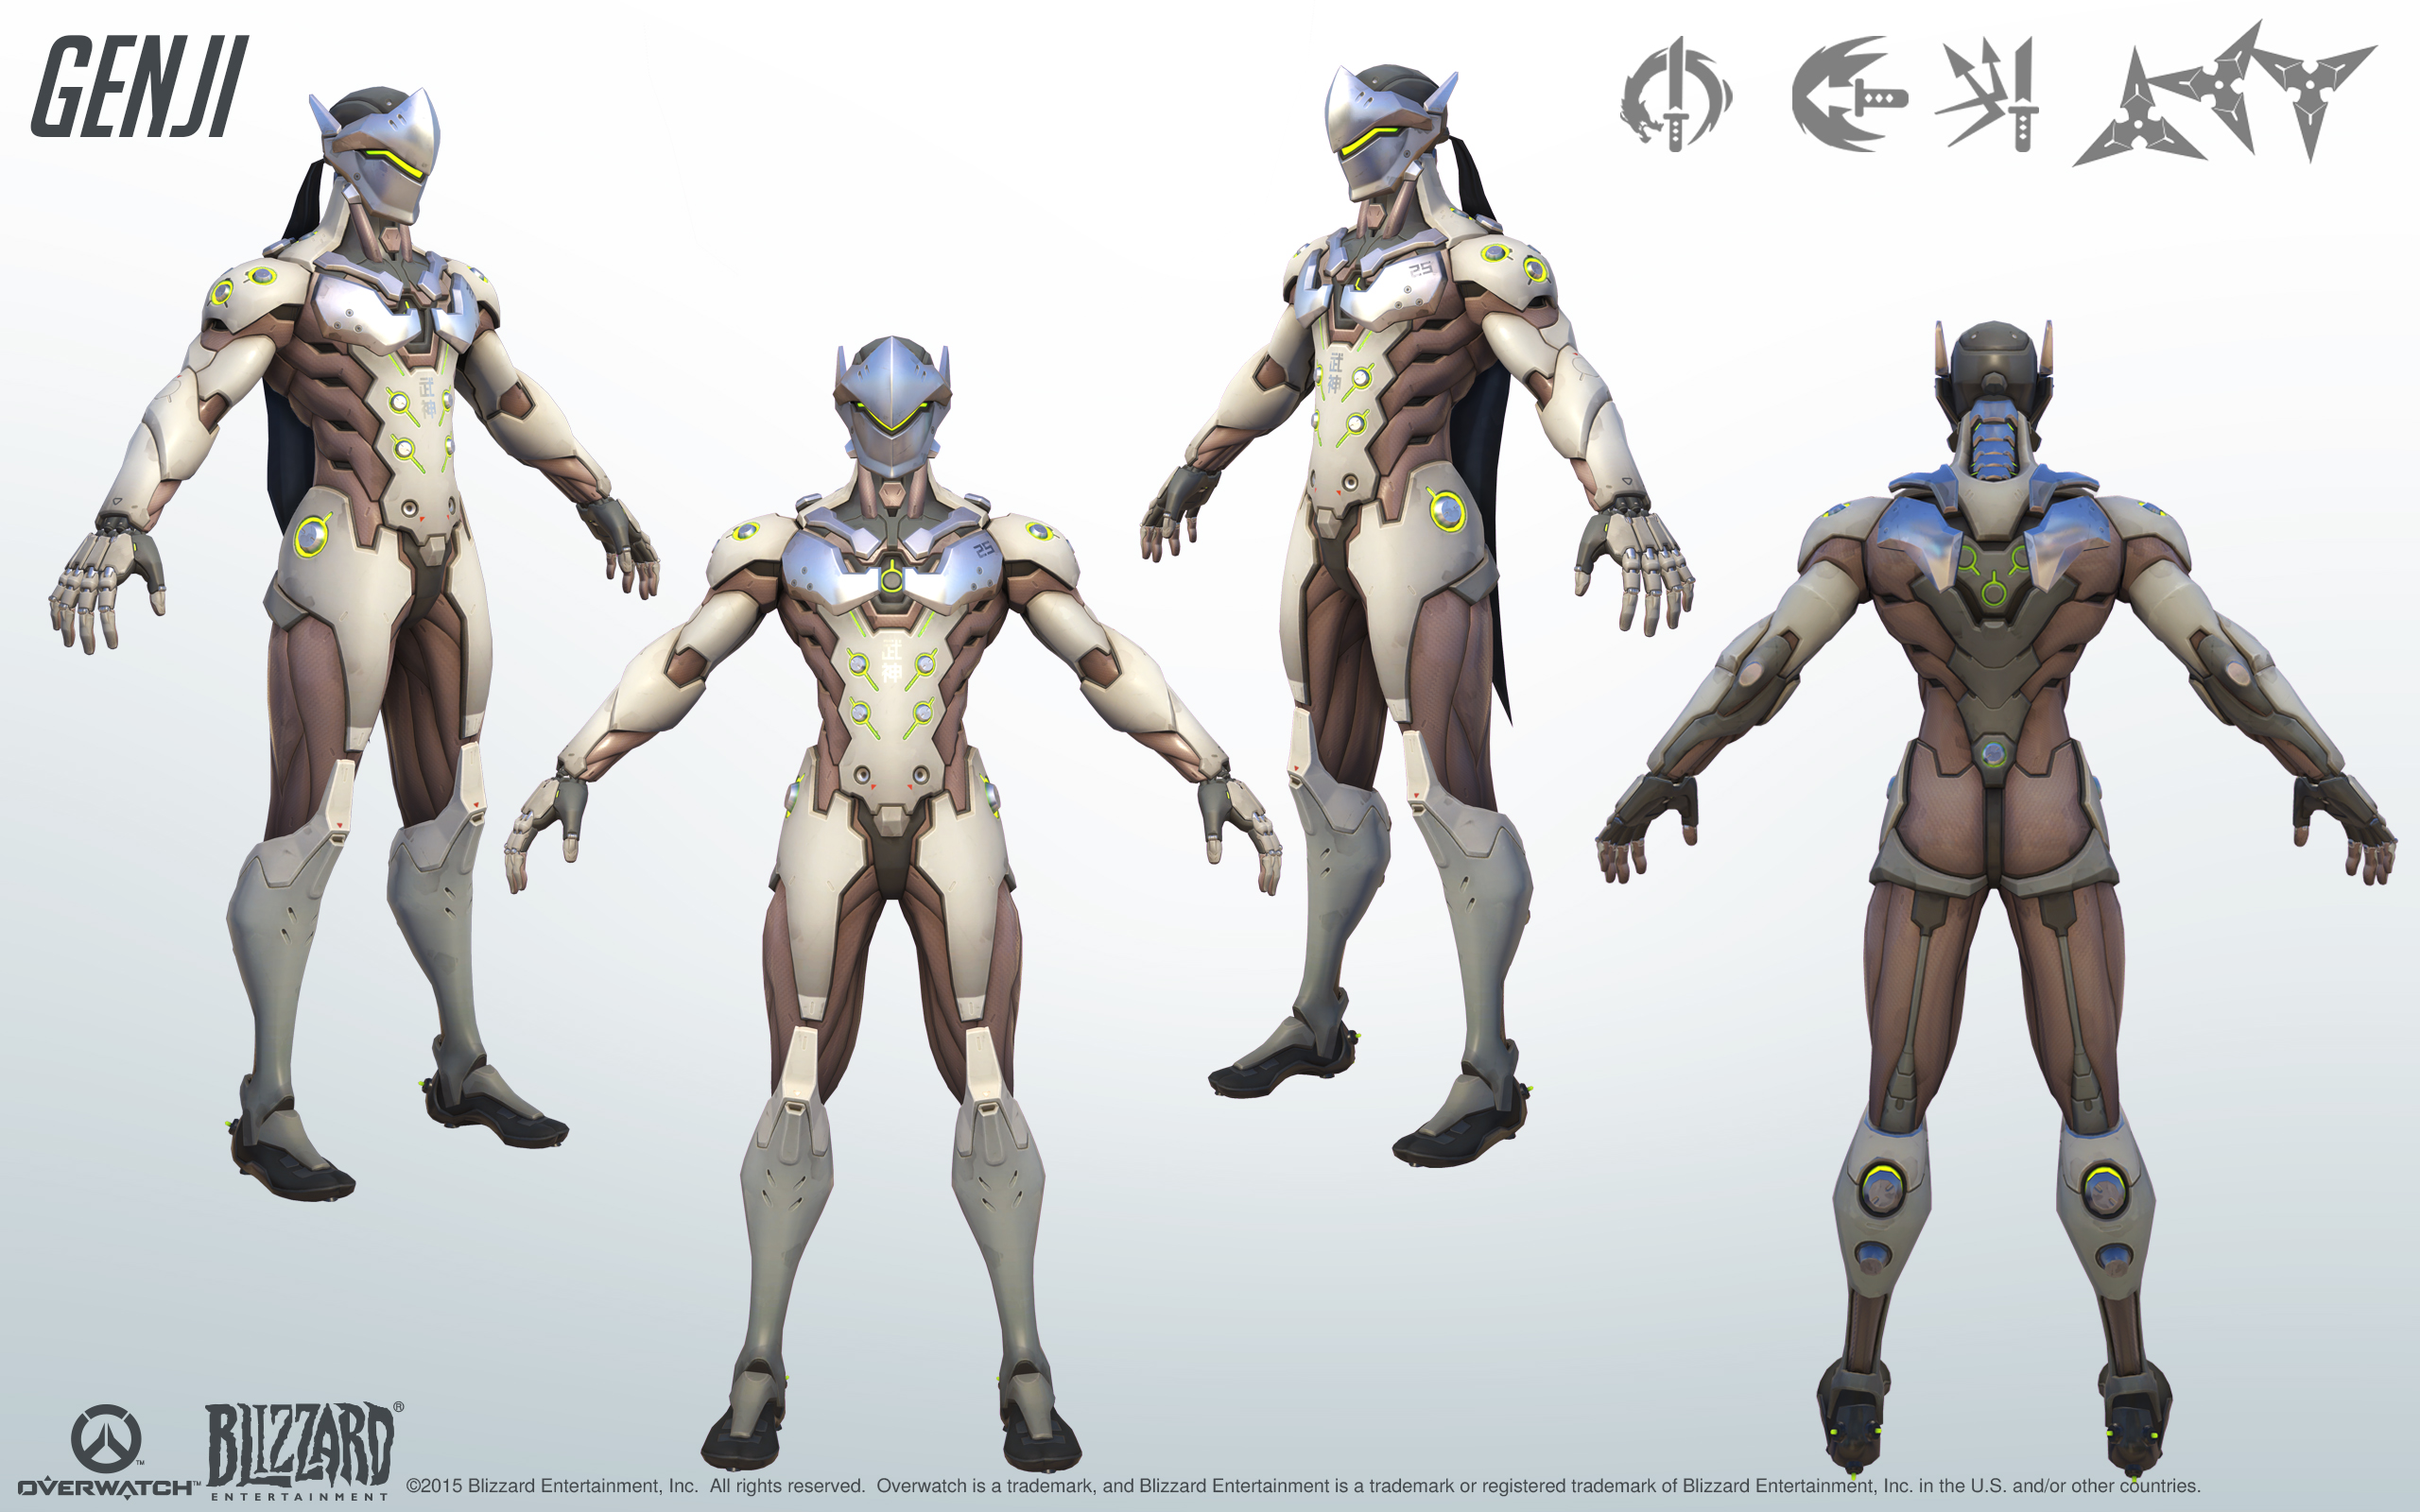 genji___overwatch___close_look_at_model_by_plank_69-d9gi39v.png